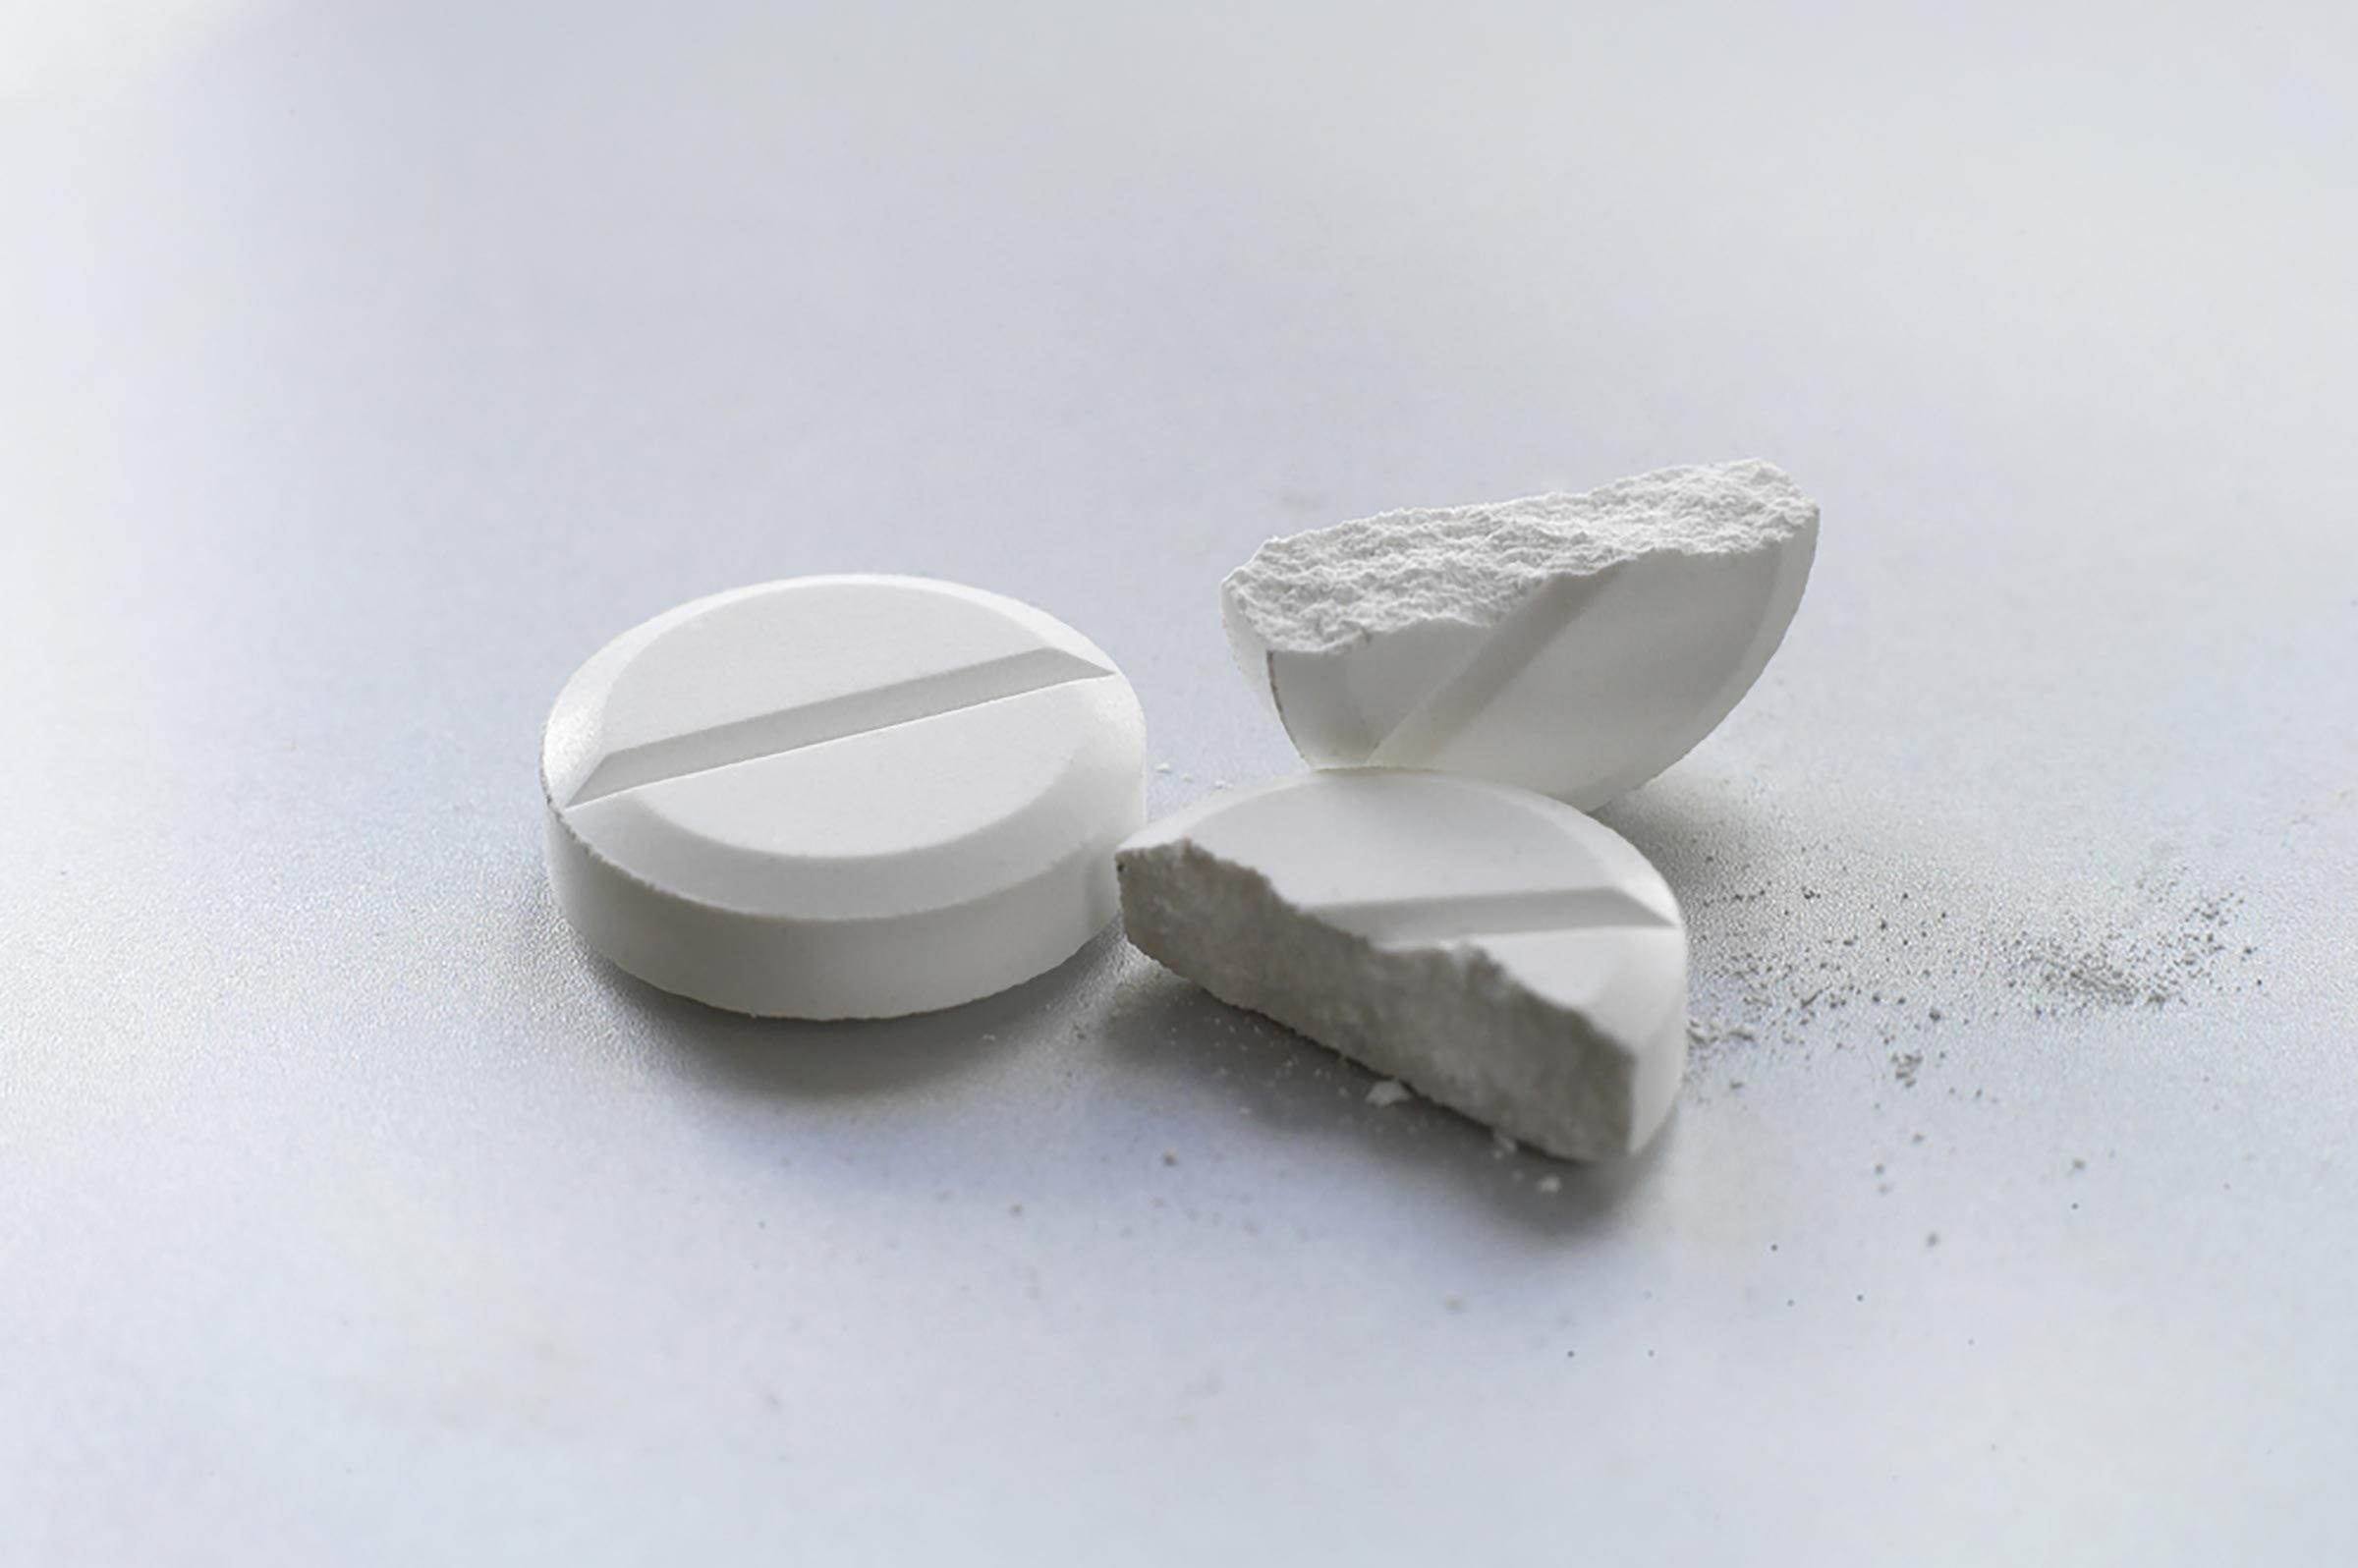 pain pills, one cut in half